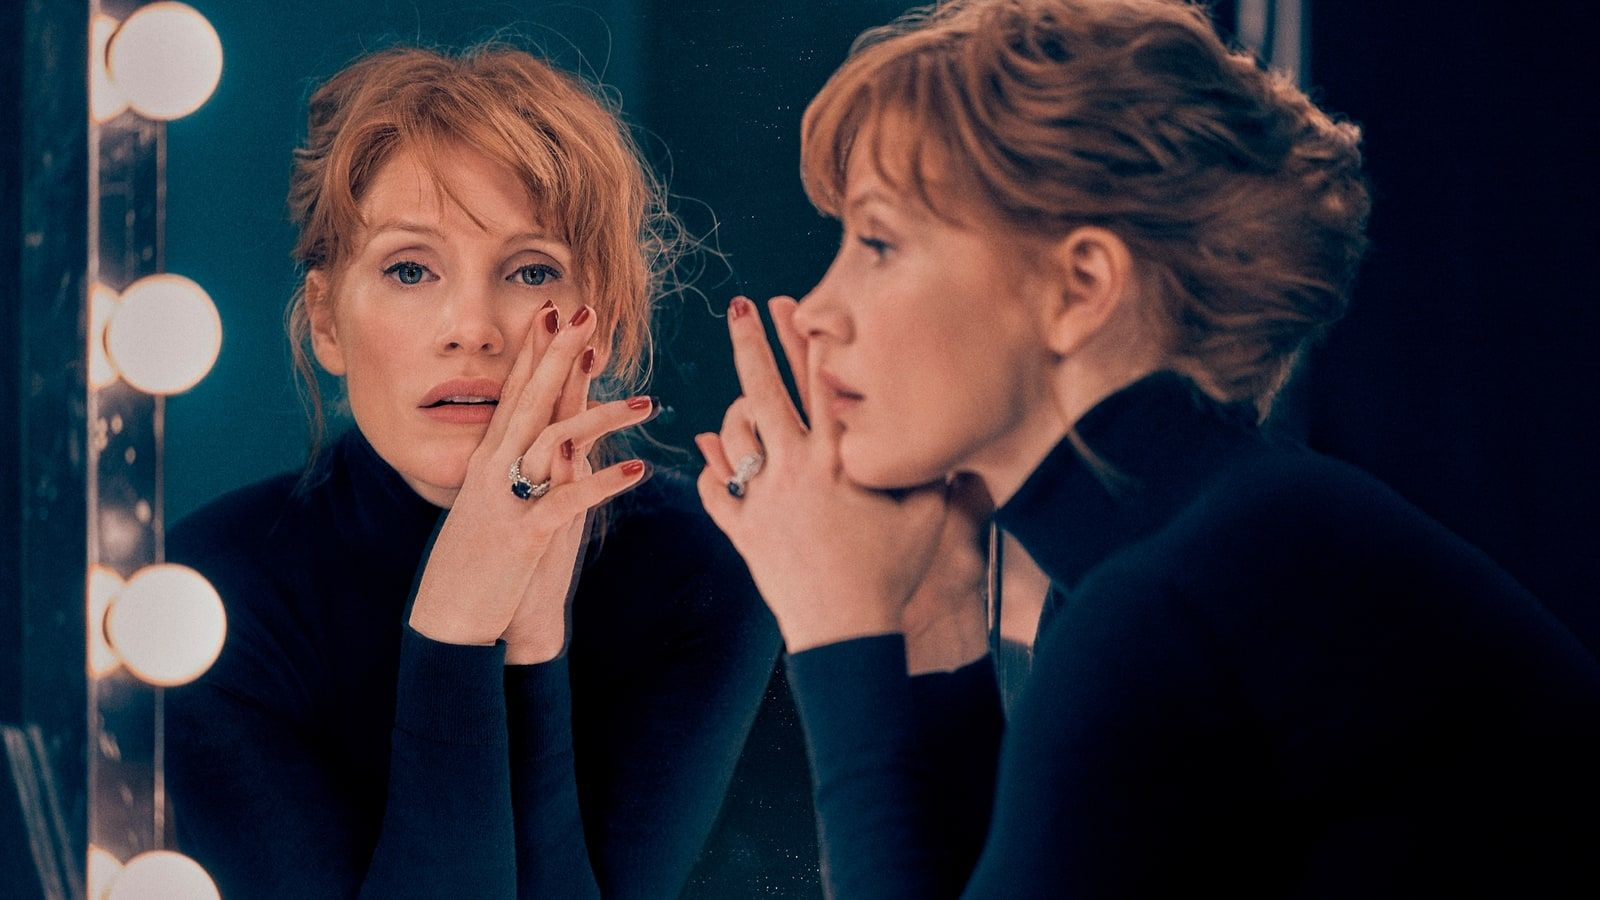 Tickets now on sale for A Doll's House starring Jessica Chastain at The Playhouse